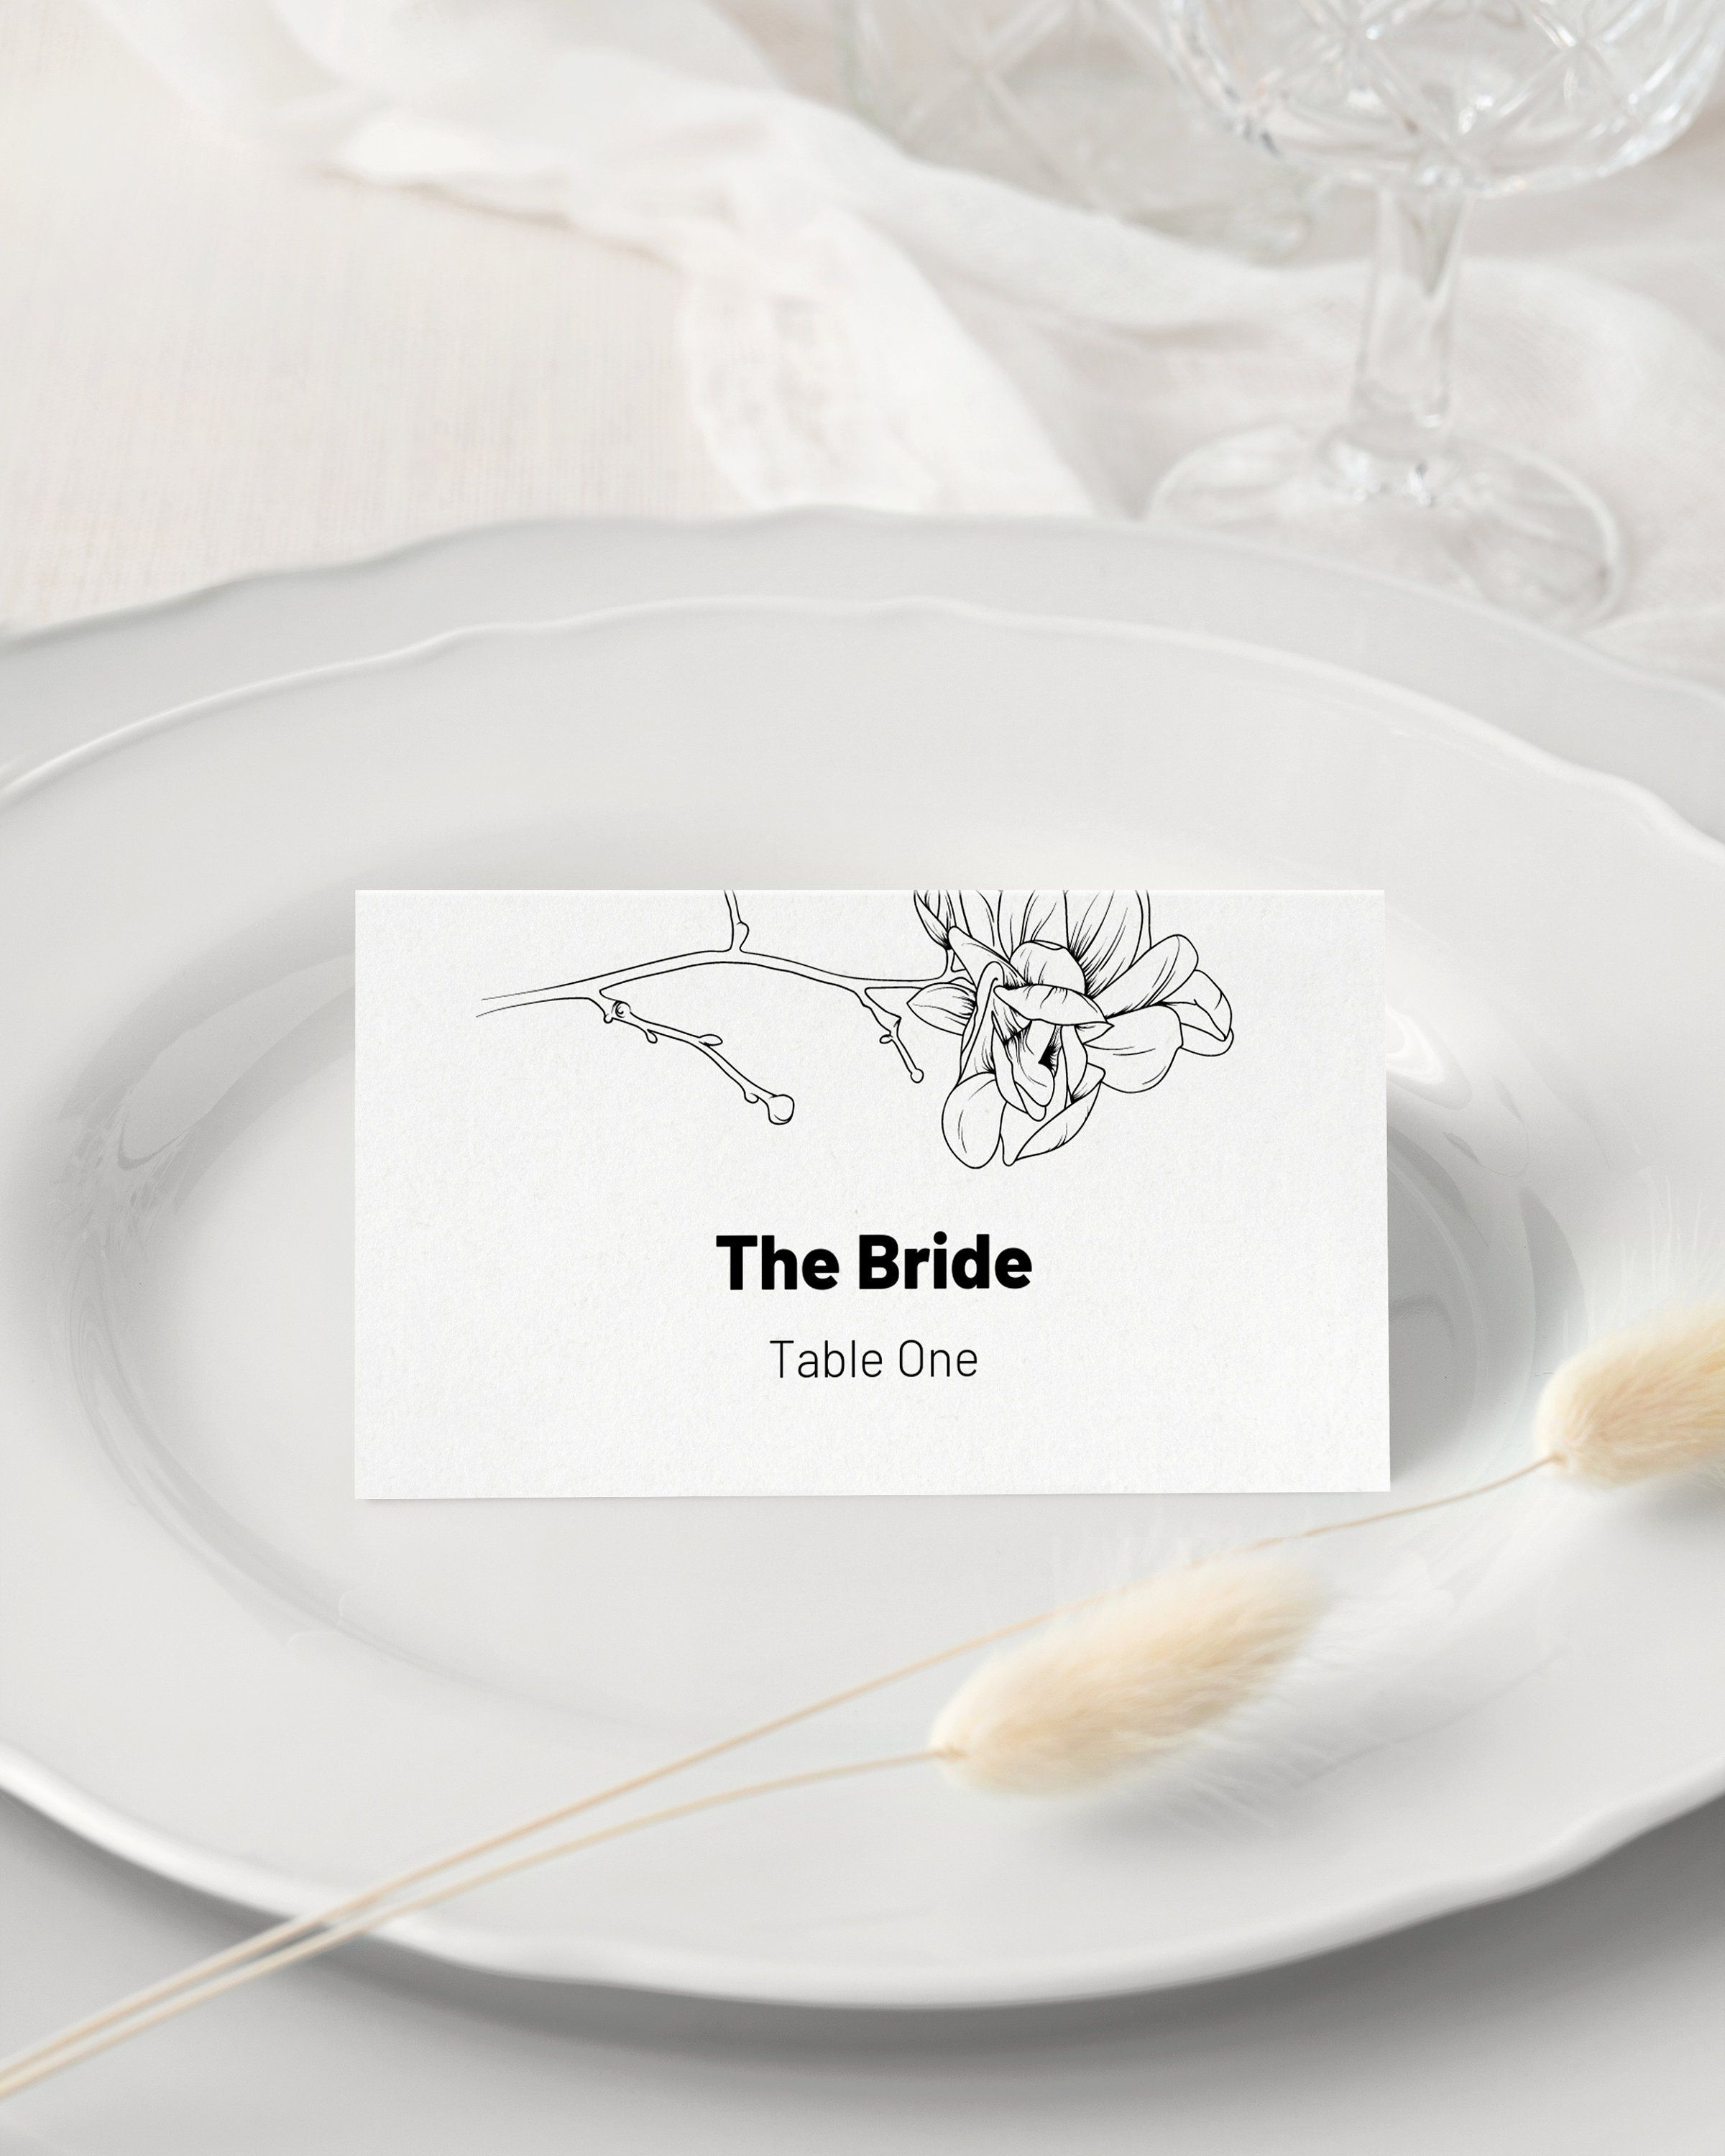 008 Unforgettable Wedding Name Card Template Picture  Free Download Design Sticker FormatFull